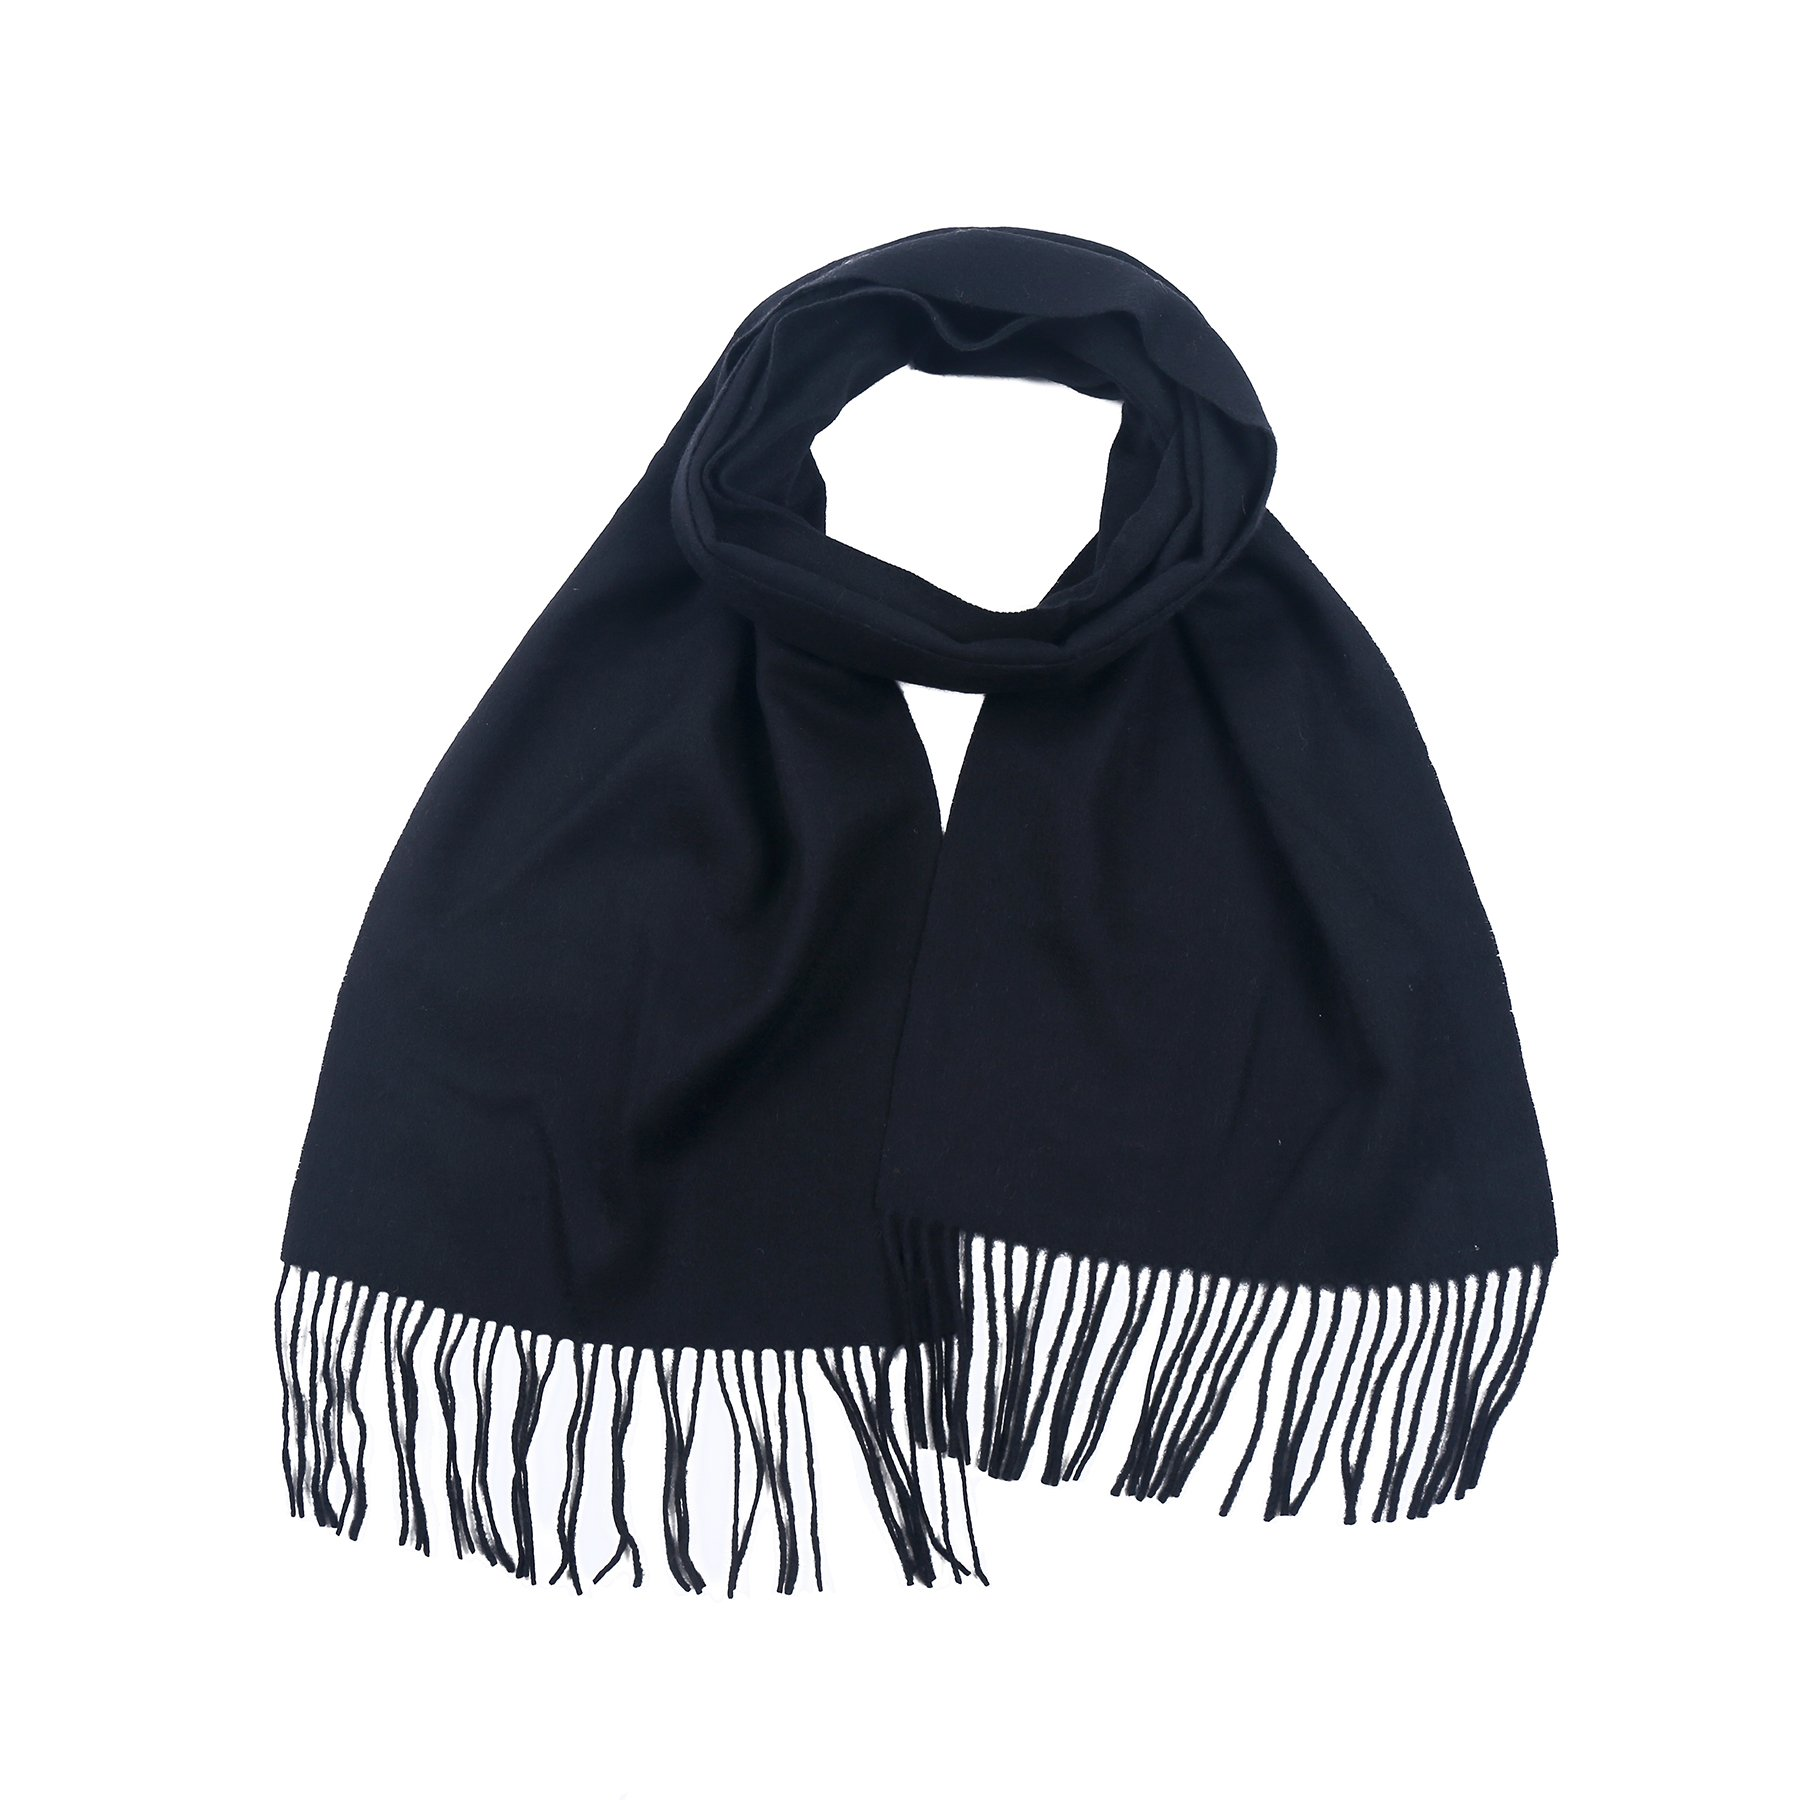 Aqueena Men's New Wool Pure Color Long Scarf With Tassels (Black)